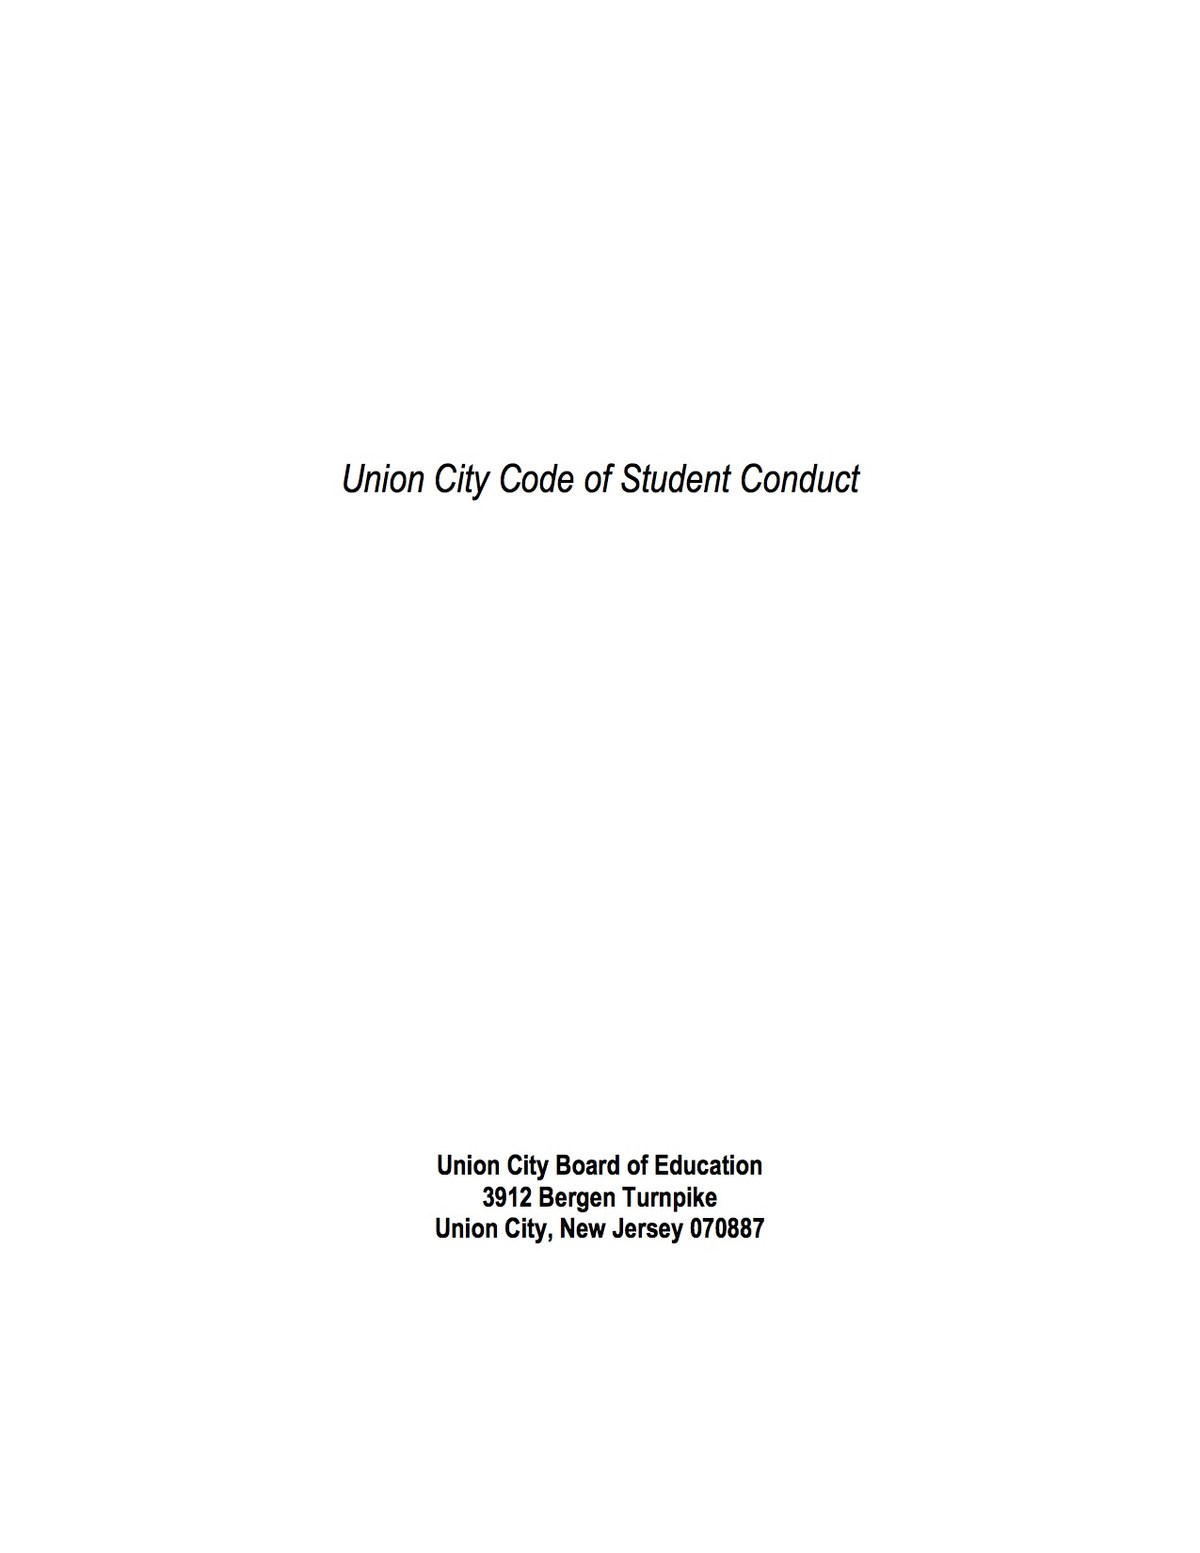 code of conduct first page image